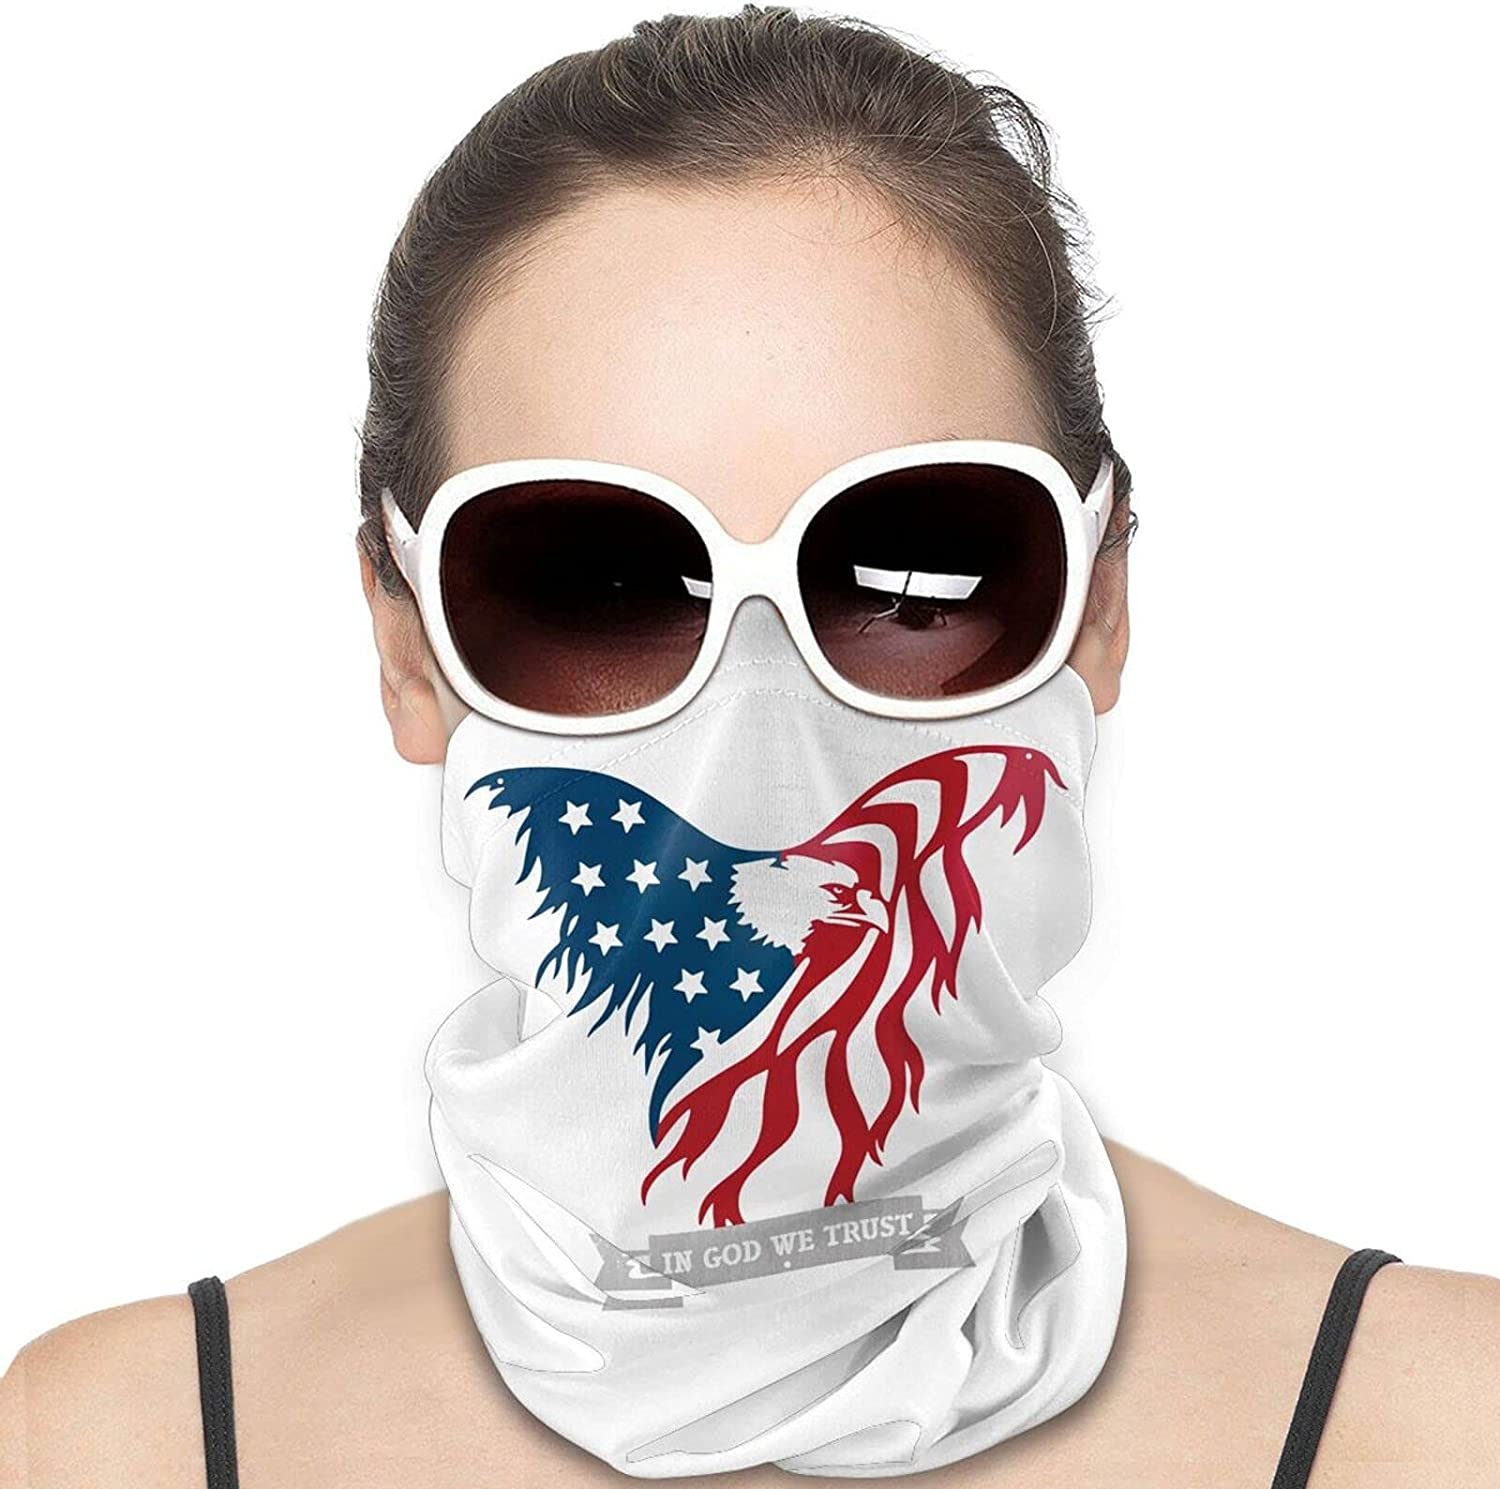 in God We Trust American Flag Round Neck Gaiter Bandnas Face Cover Uv Protection Prevent bask in Ice Scarf Headbands Perfect for Motorcycle Cycling Running Festival Raves Outdoors